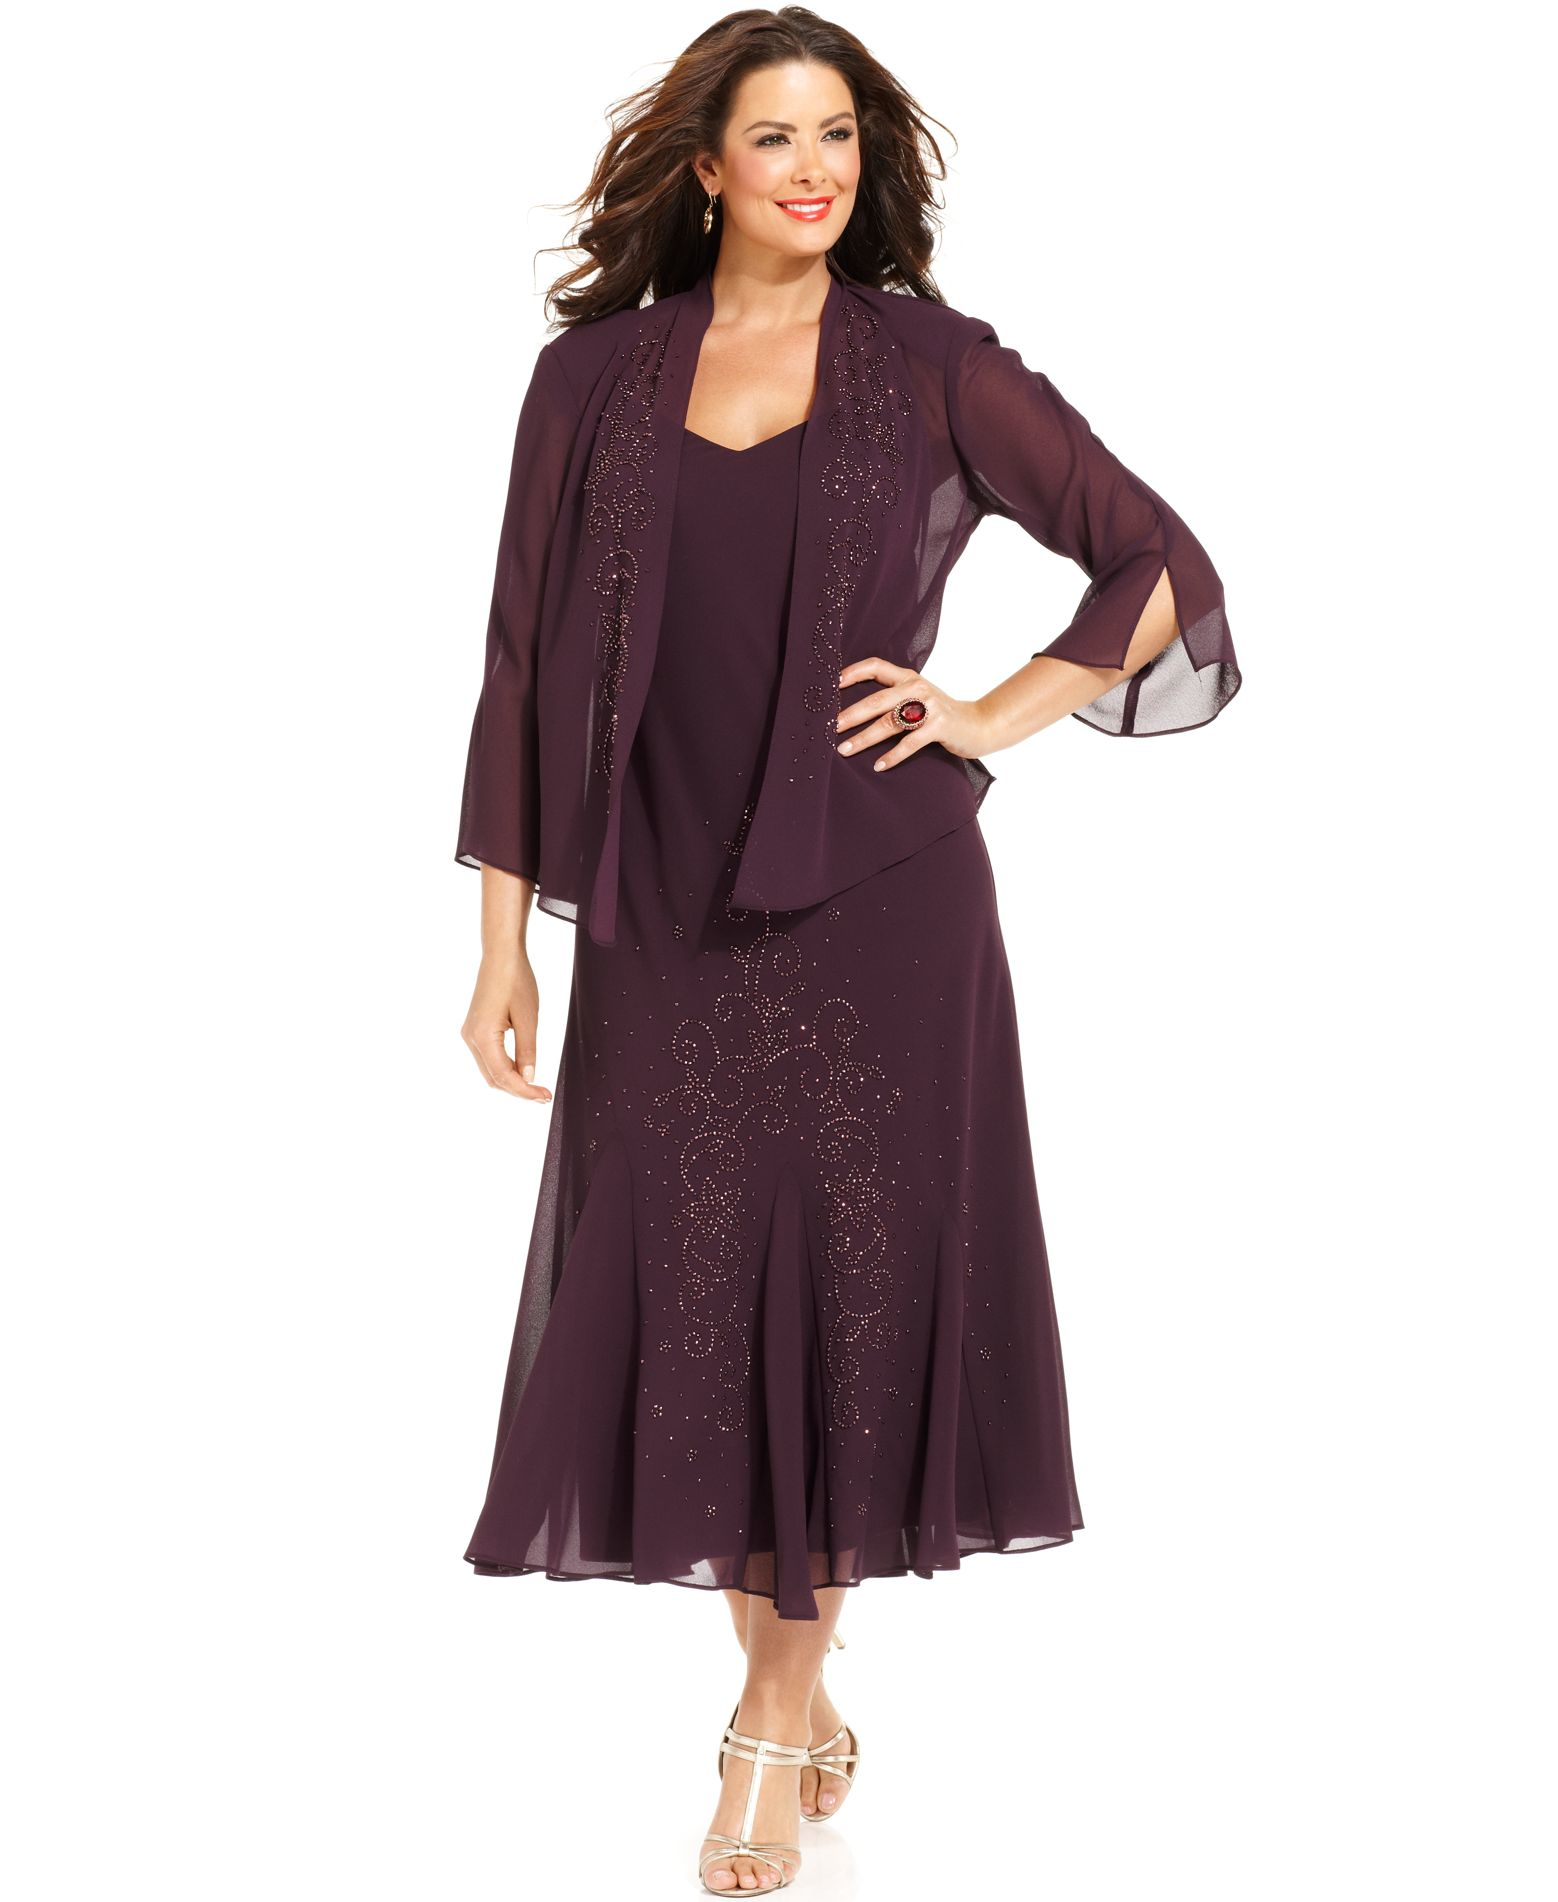 R & M Richards Plus Size Beaded V-neck Dress And Jacket In